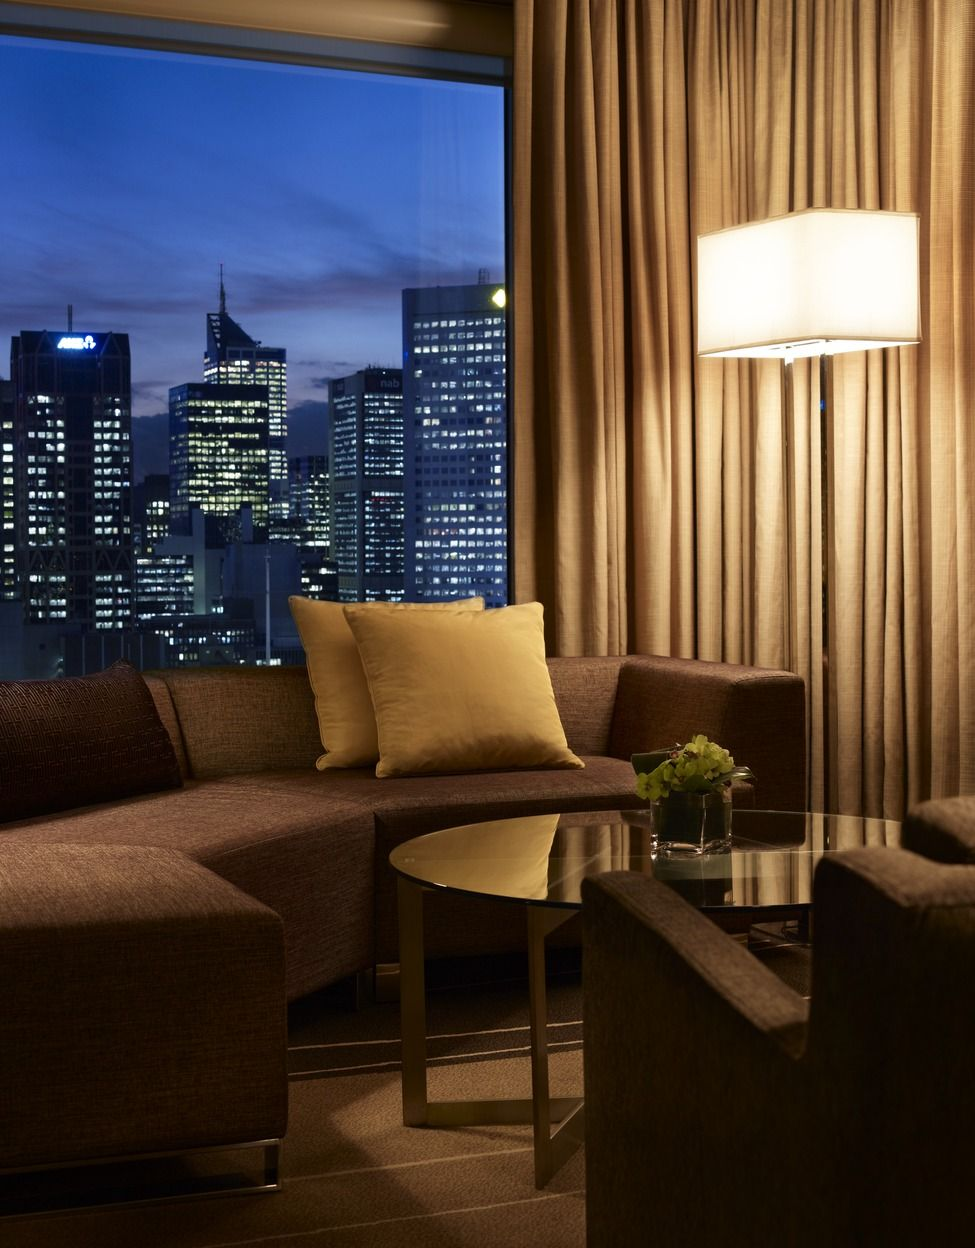 Enjoy the sights and sounds of the city at Grand Hyatt Melbourne